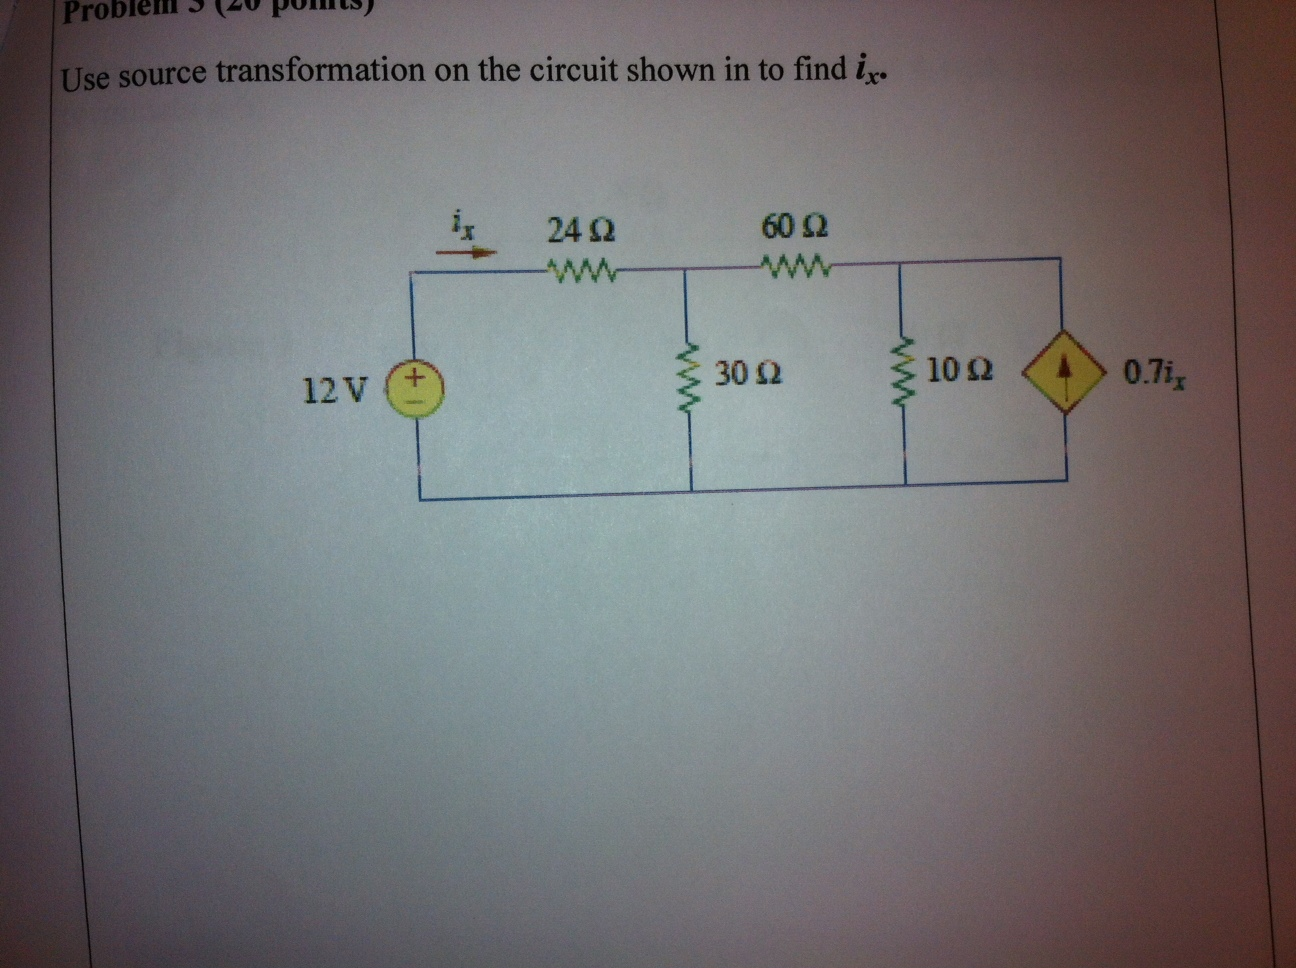 Use source transformation on the circuit shown in